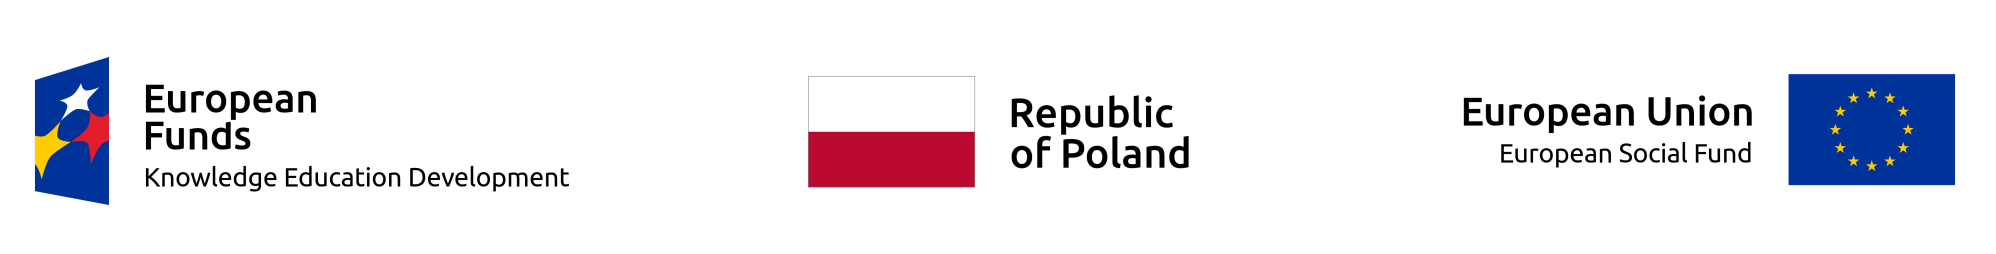 Logo European Funds - Republic of Poland - European Union